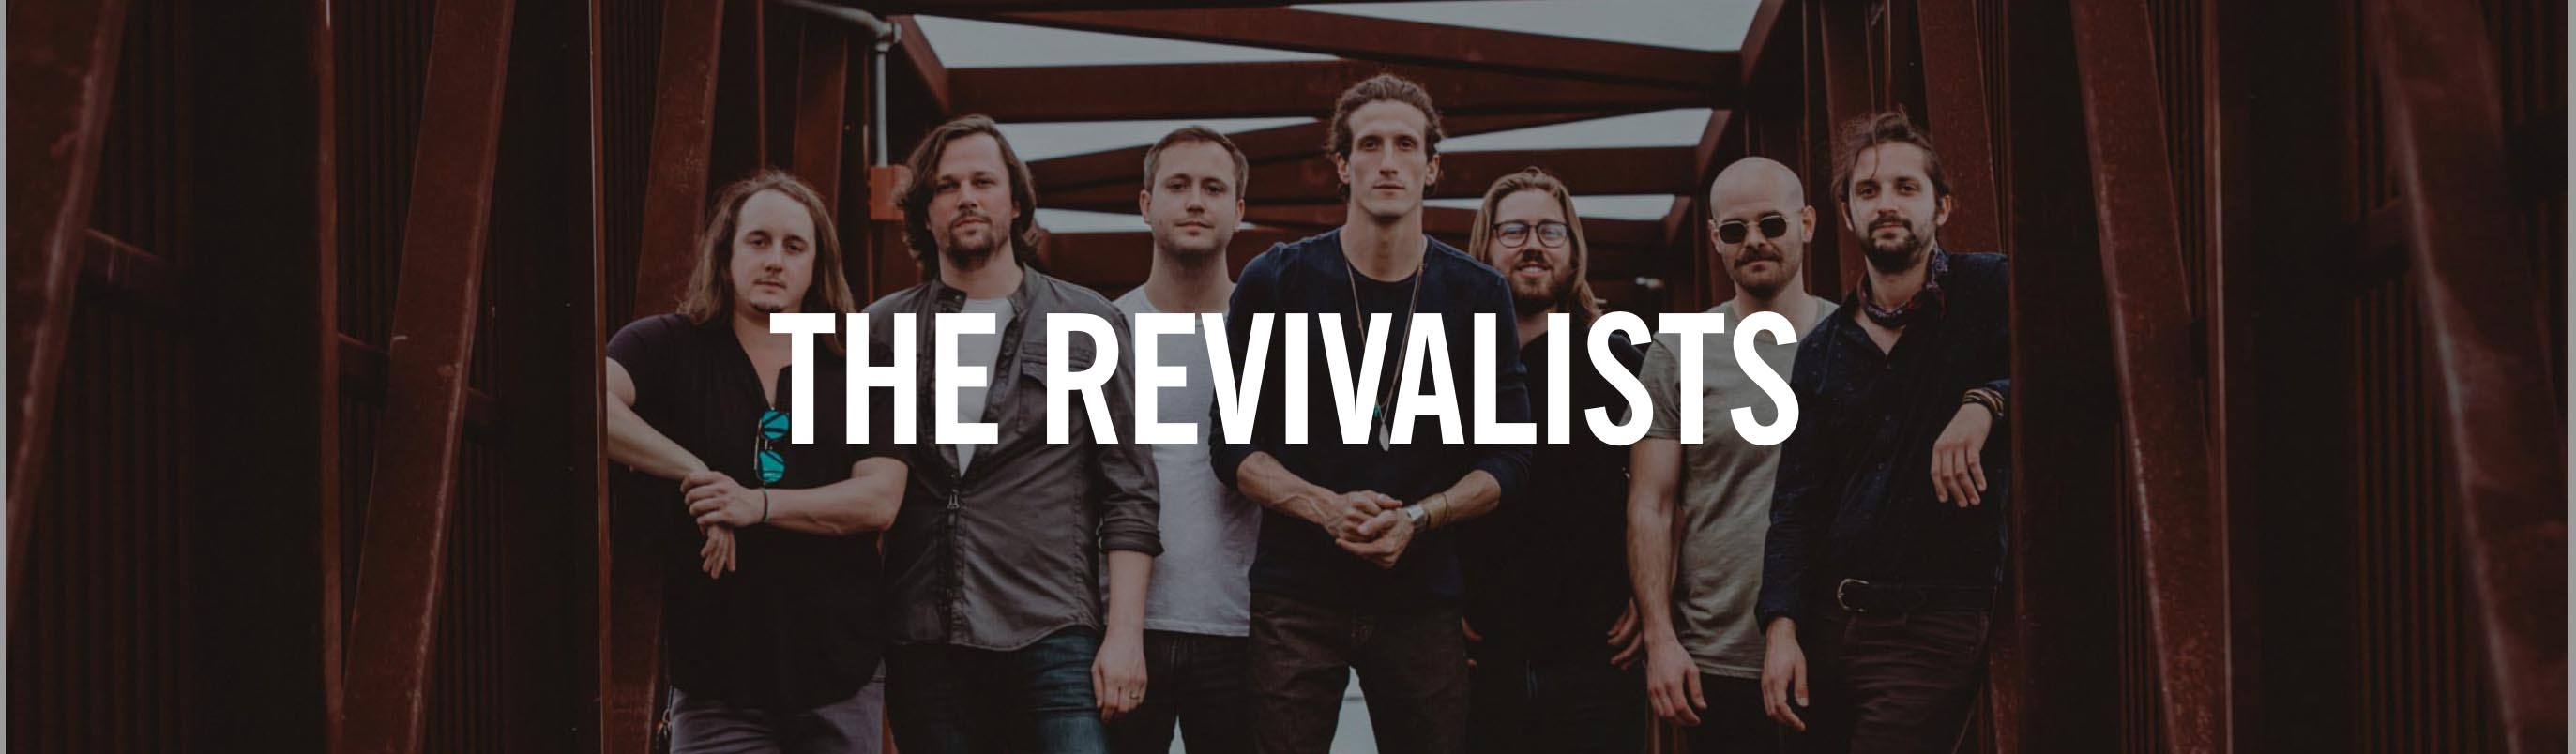 Extra Image The Revivalists